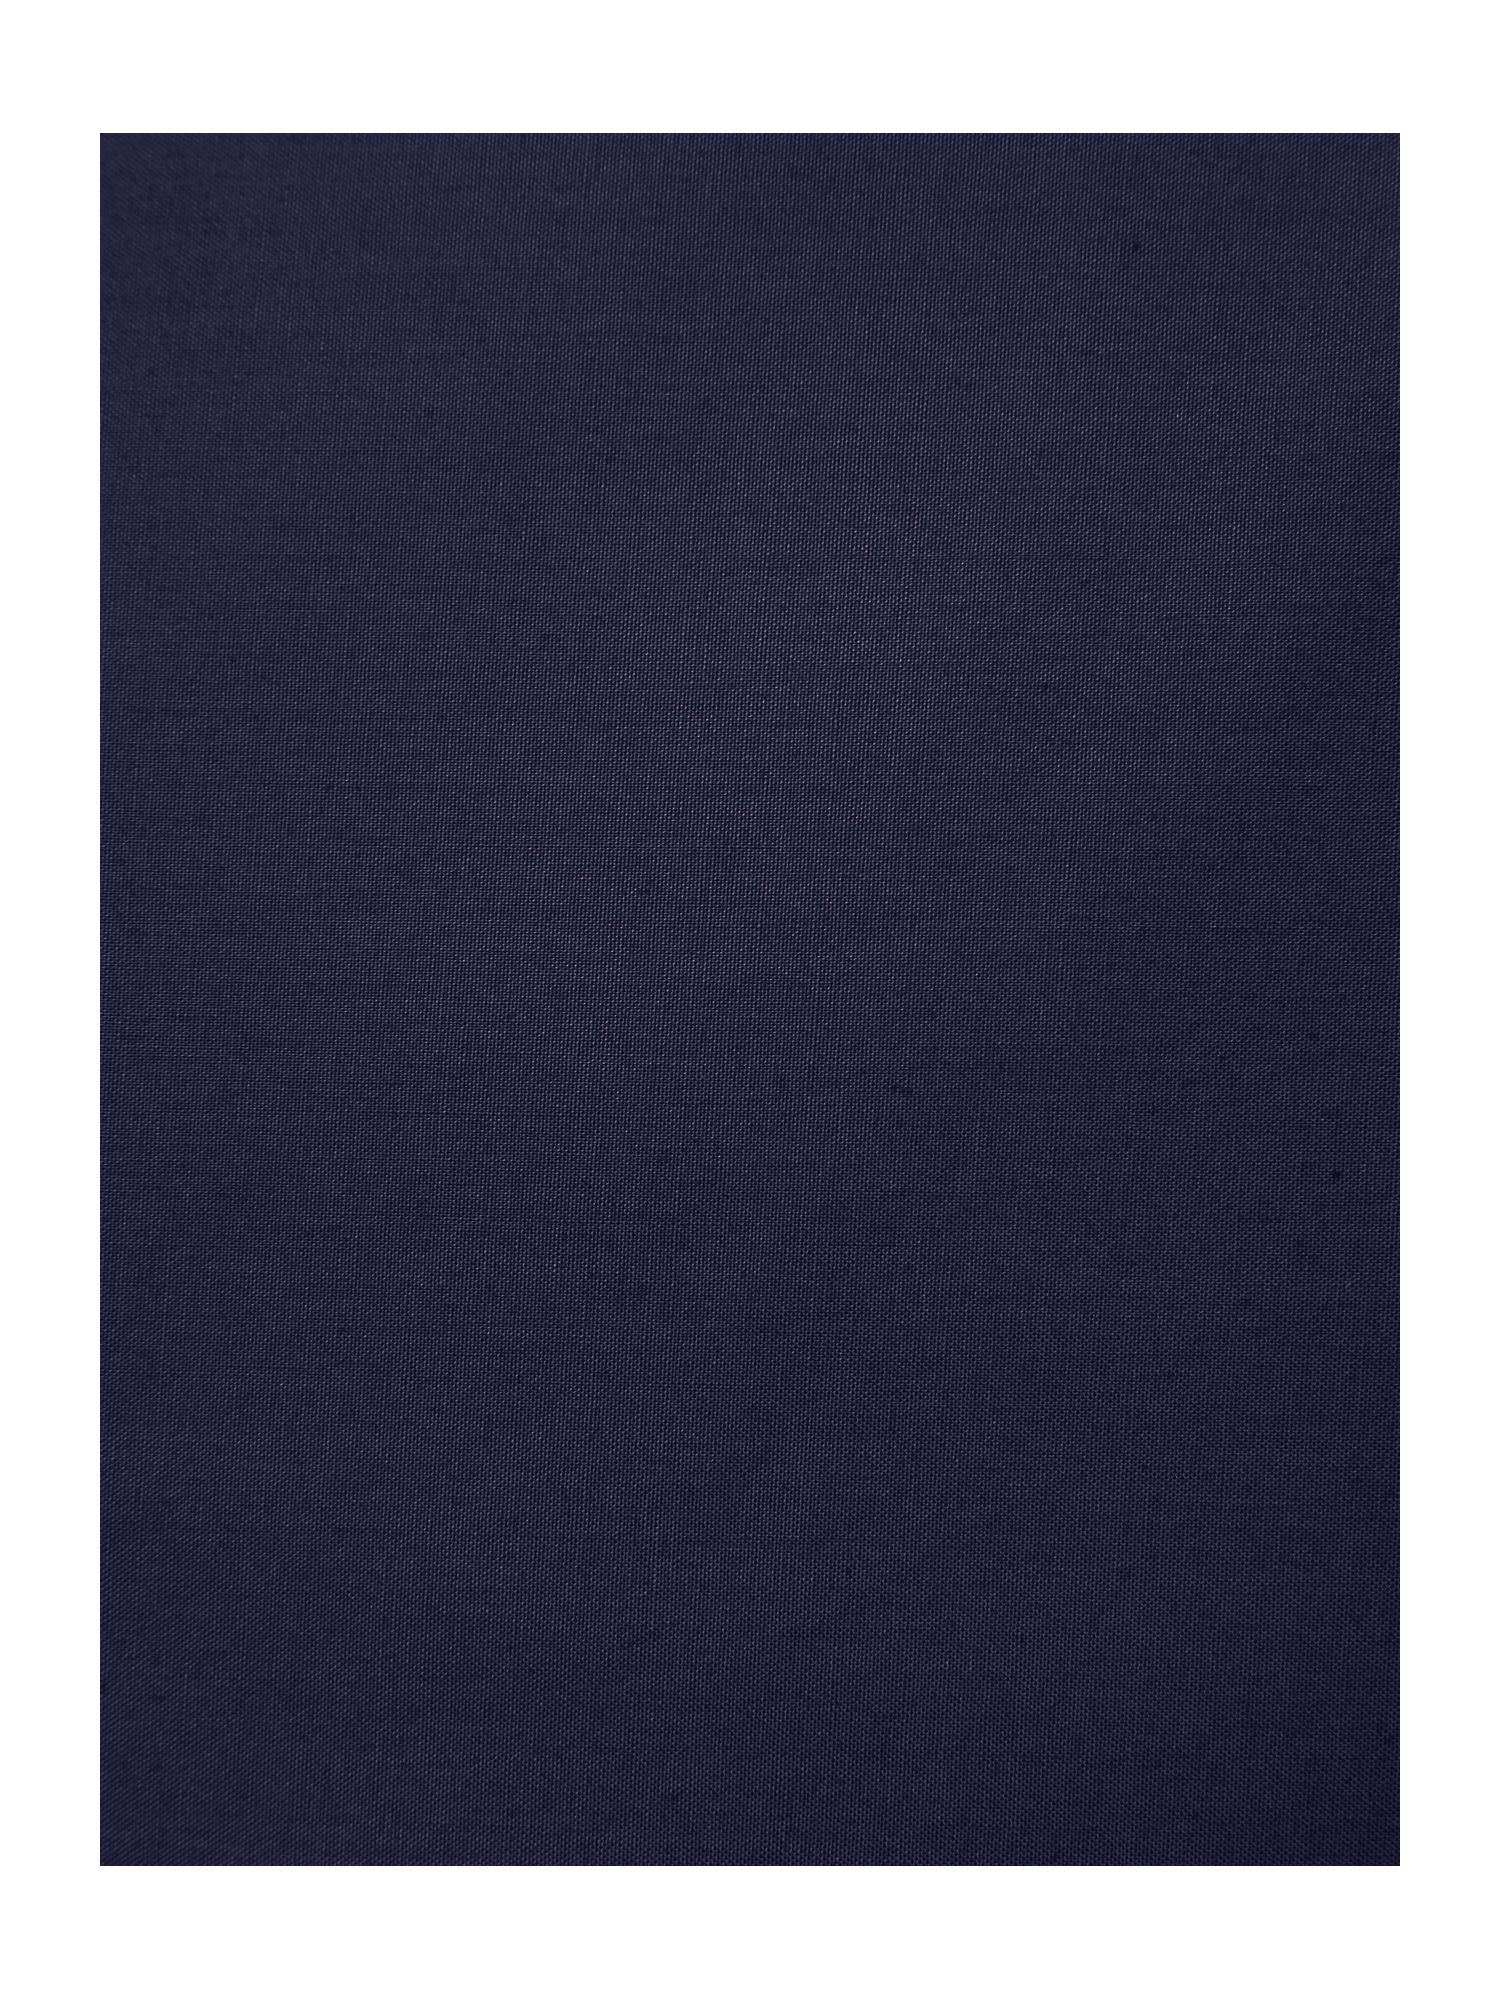 French navy 100% cotton bed linen